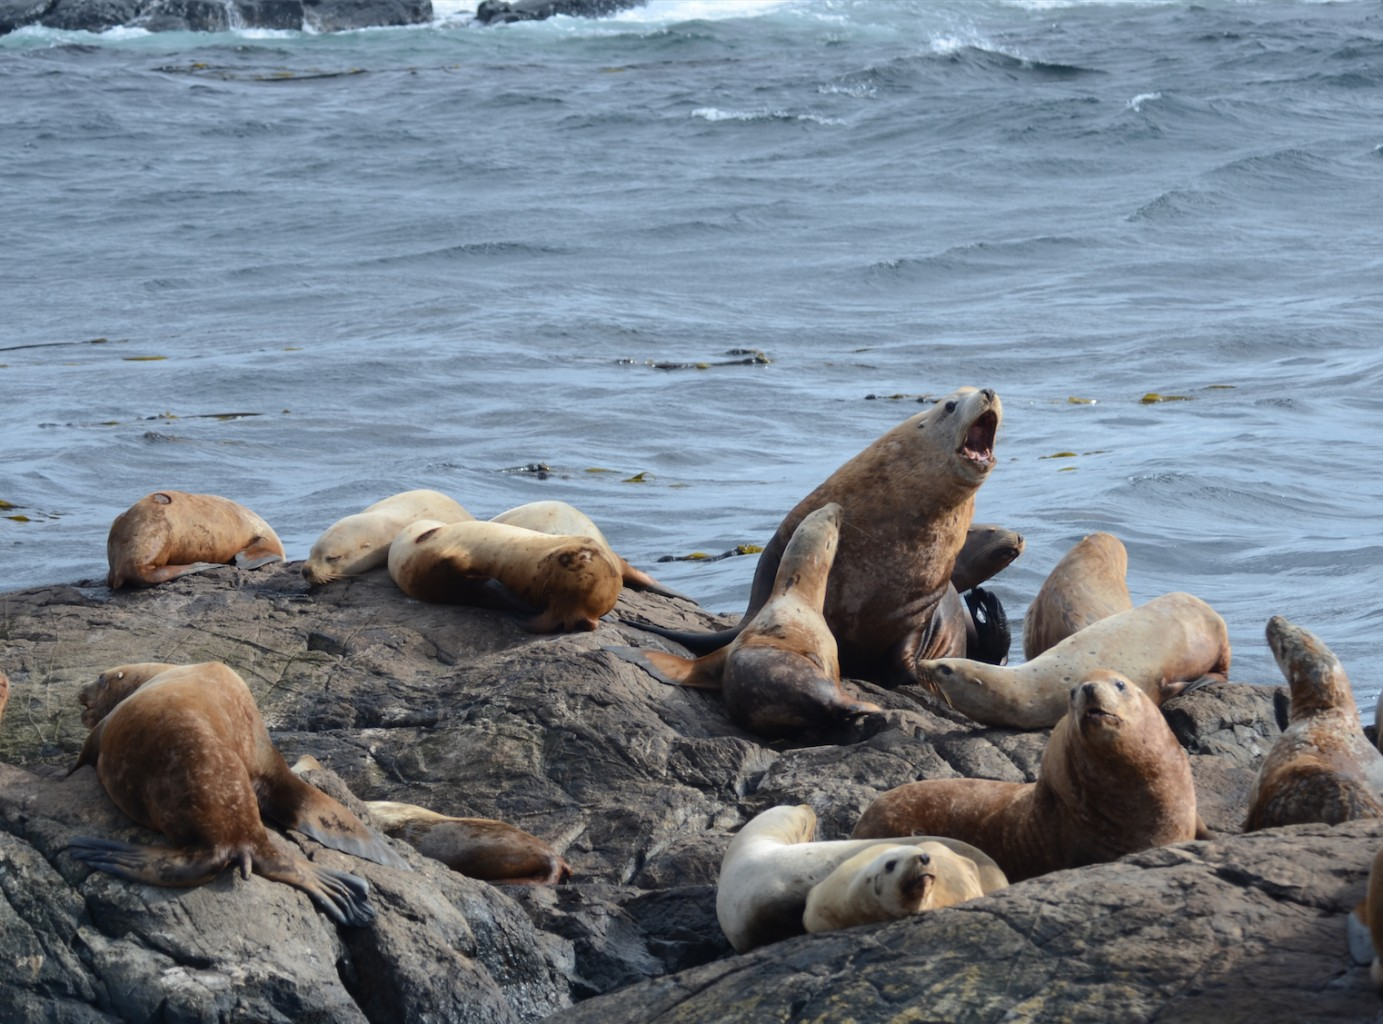 Size difference between males and females is obvious in Steller Sea Lions.